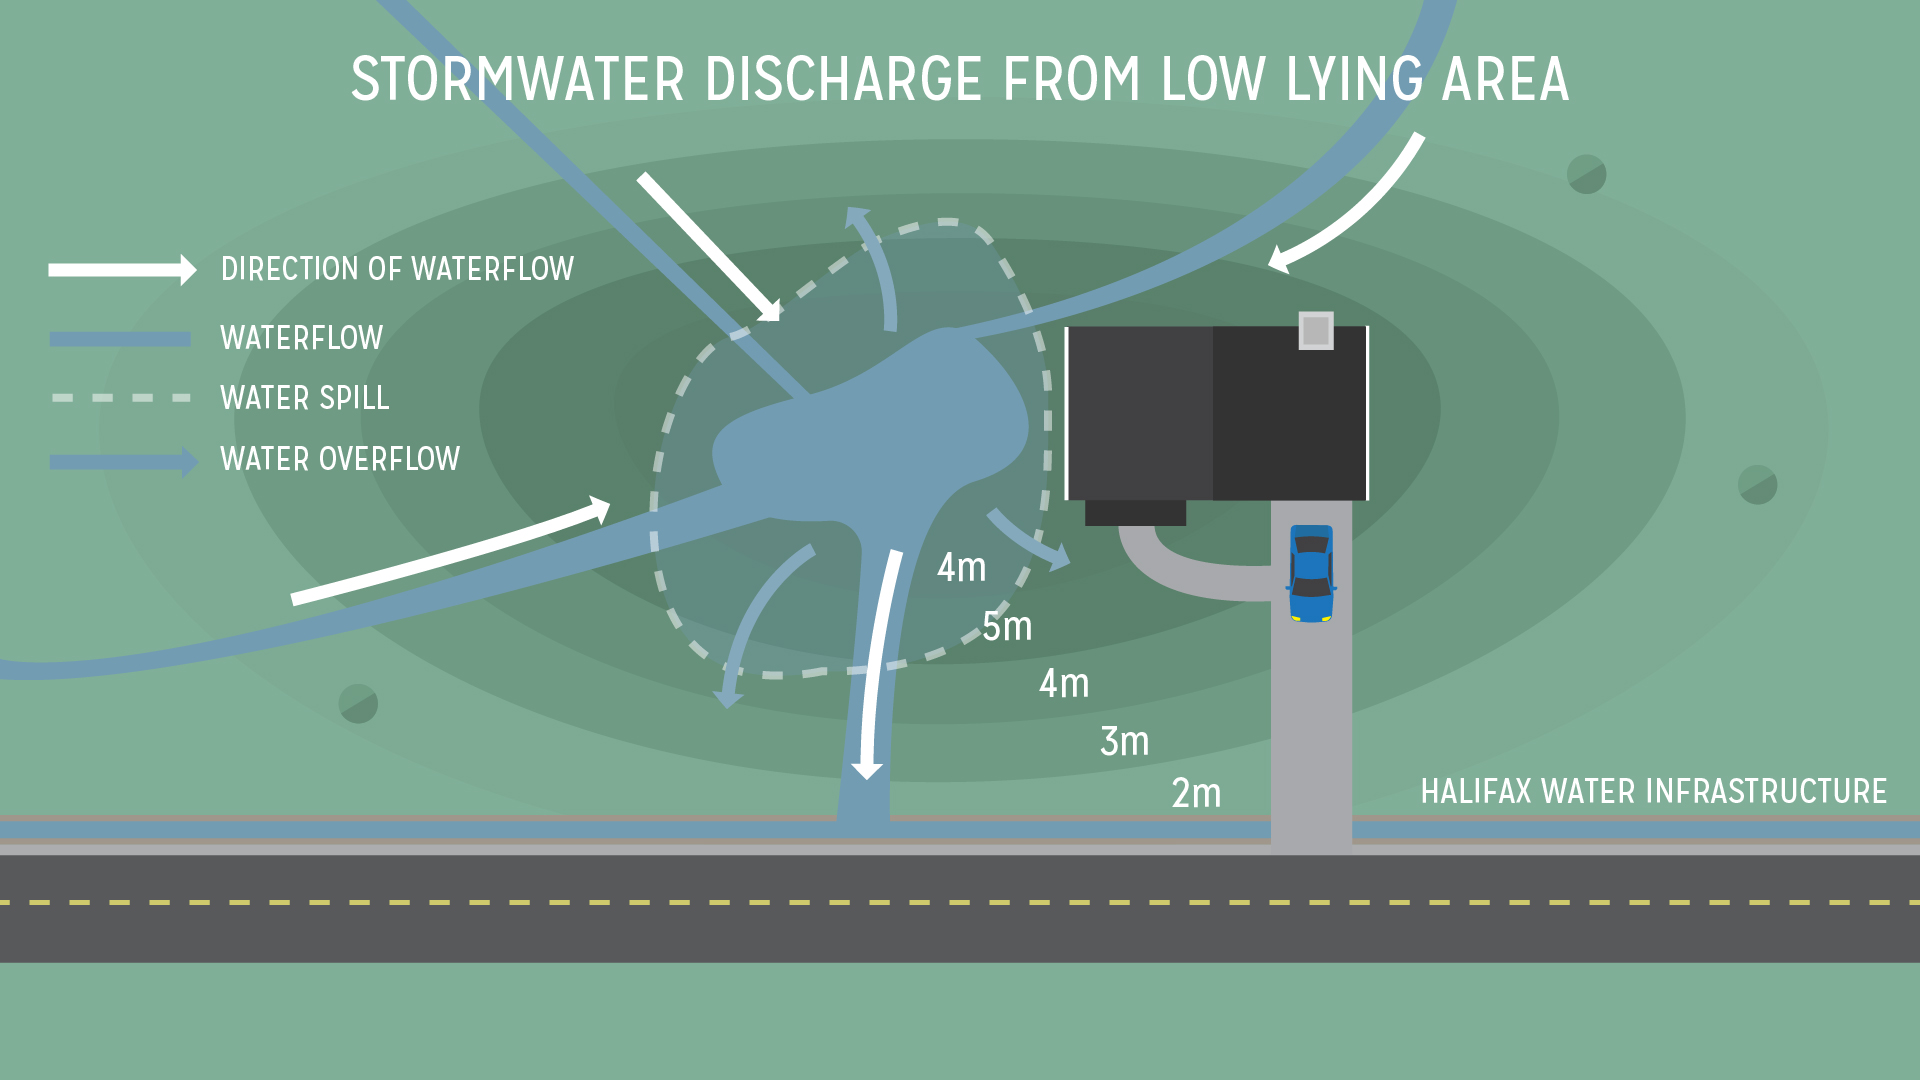 Image showing stormwater discharge from low-lying area